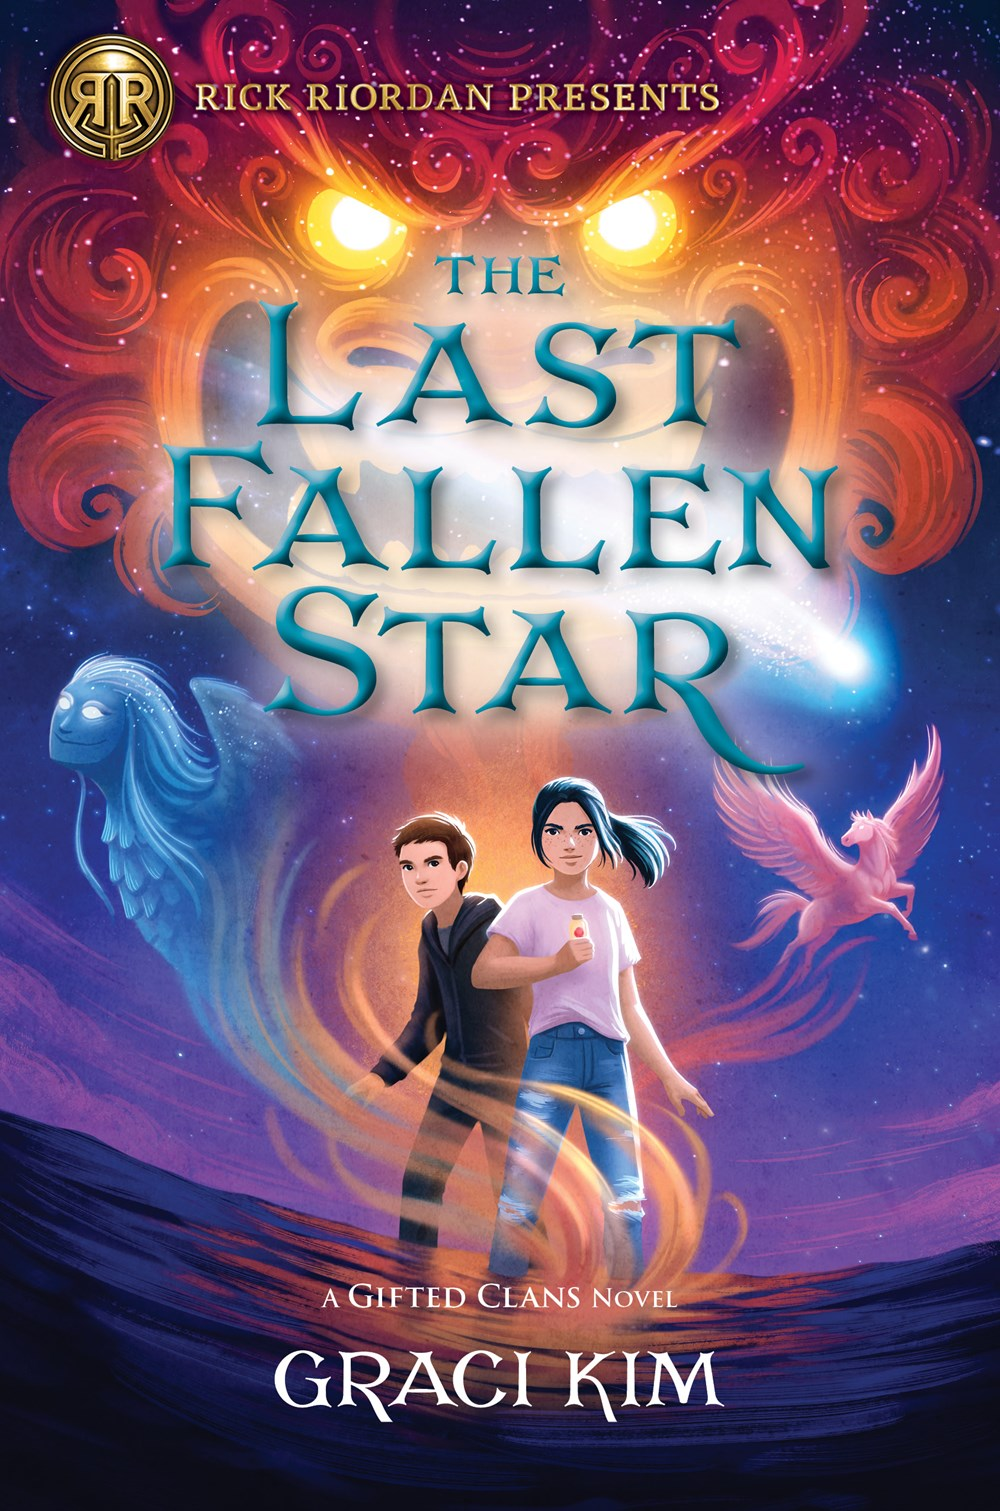 The Last Fallen Star (A Gifted Clans Novel) by Graci Kim